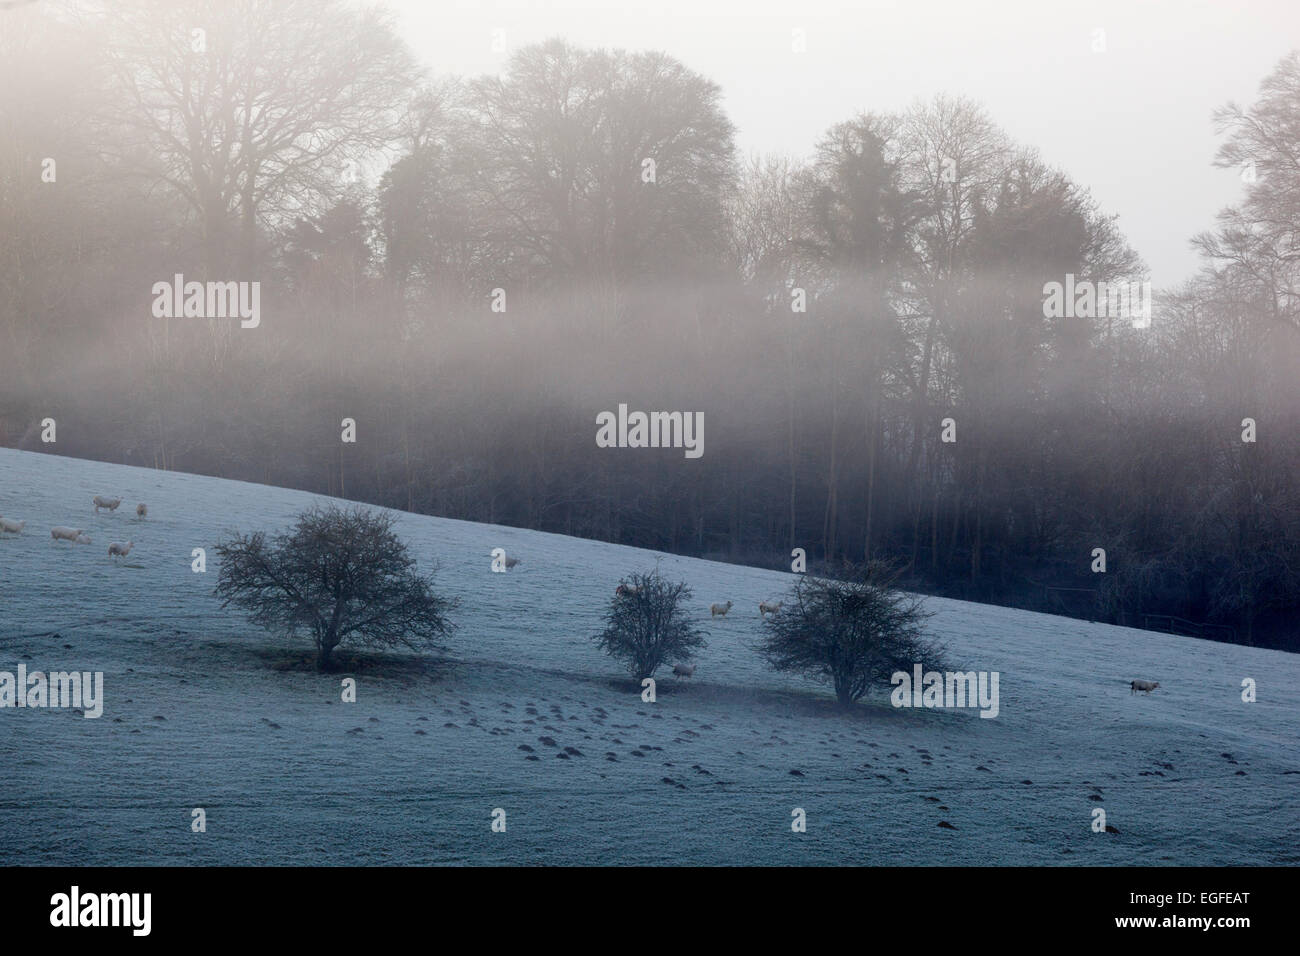 Winter trees with frost and mist, Stow-on-the-Wold, Cotswolds, Gloucestershire, England, United Kingdom, Europe Stock Photo